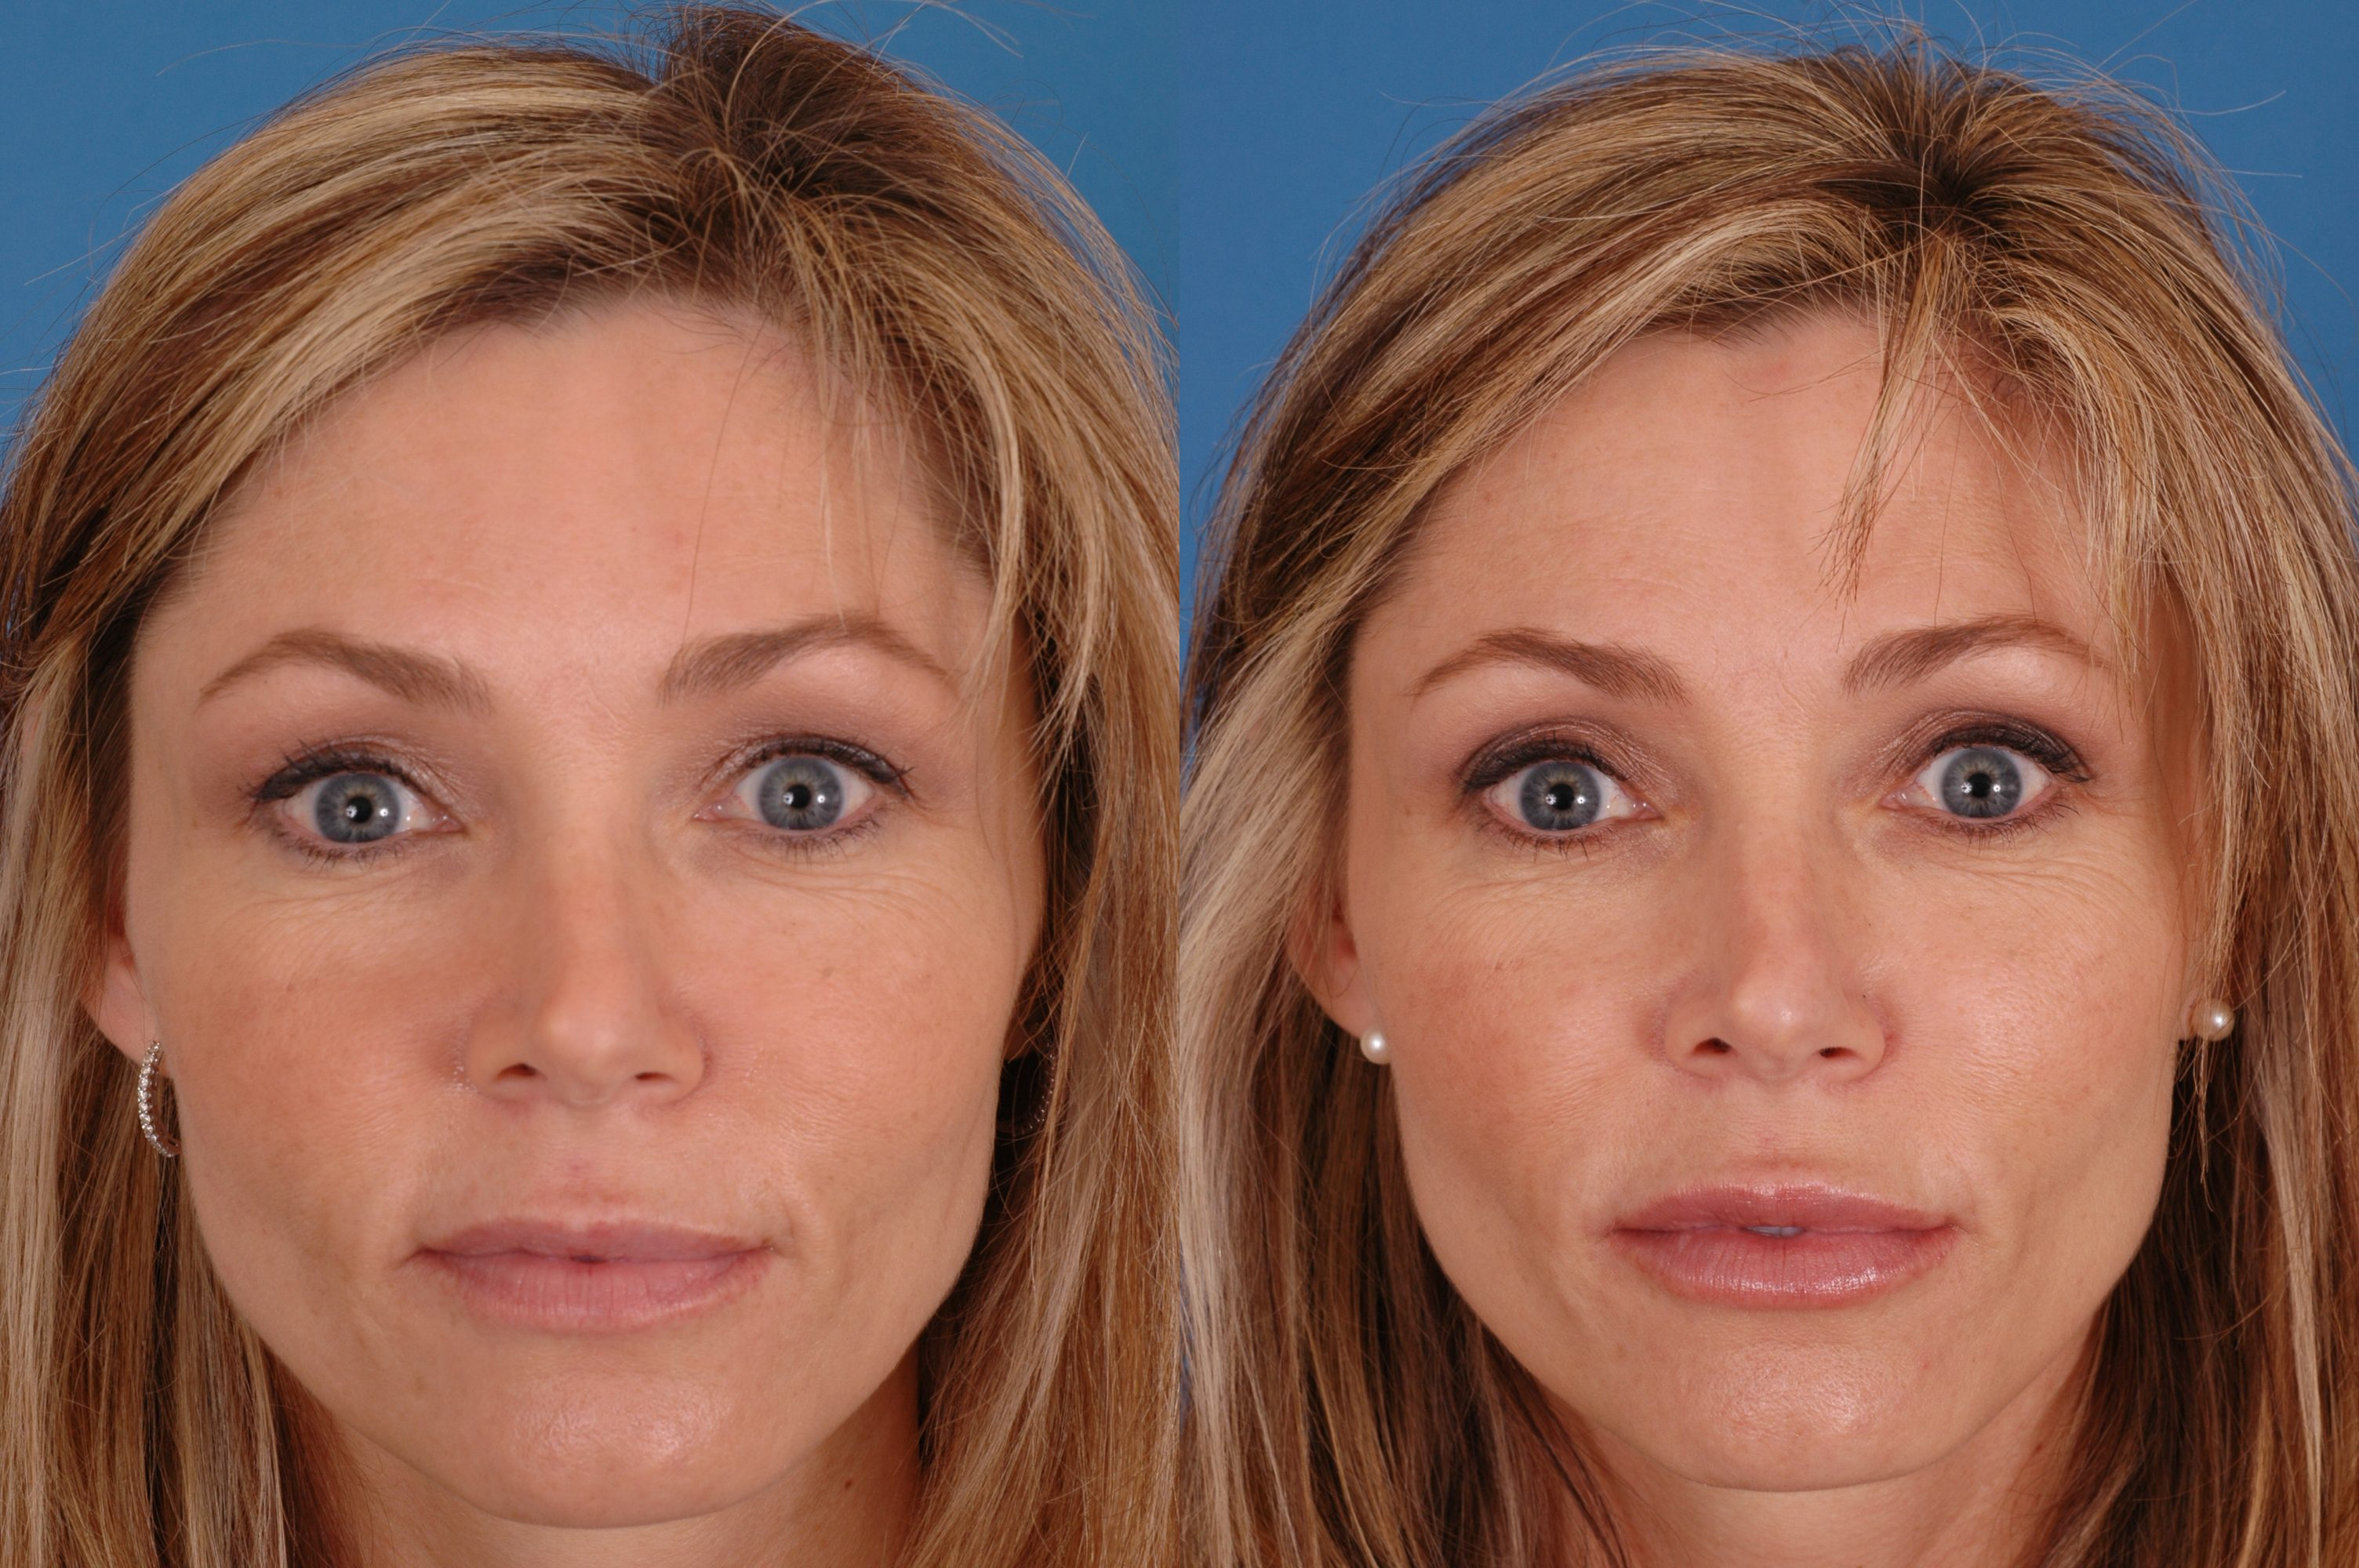 facial-exercise-before-and-after-photos-girls-hot